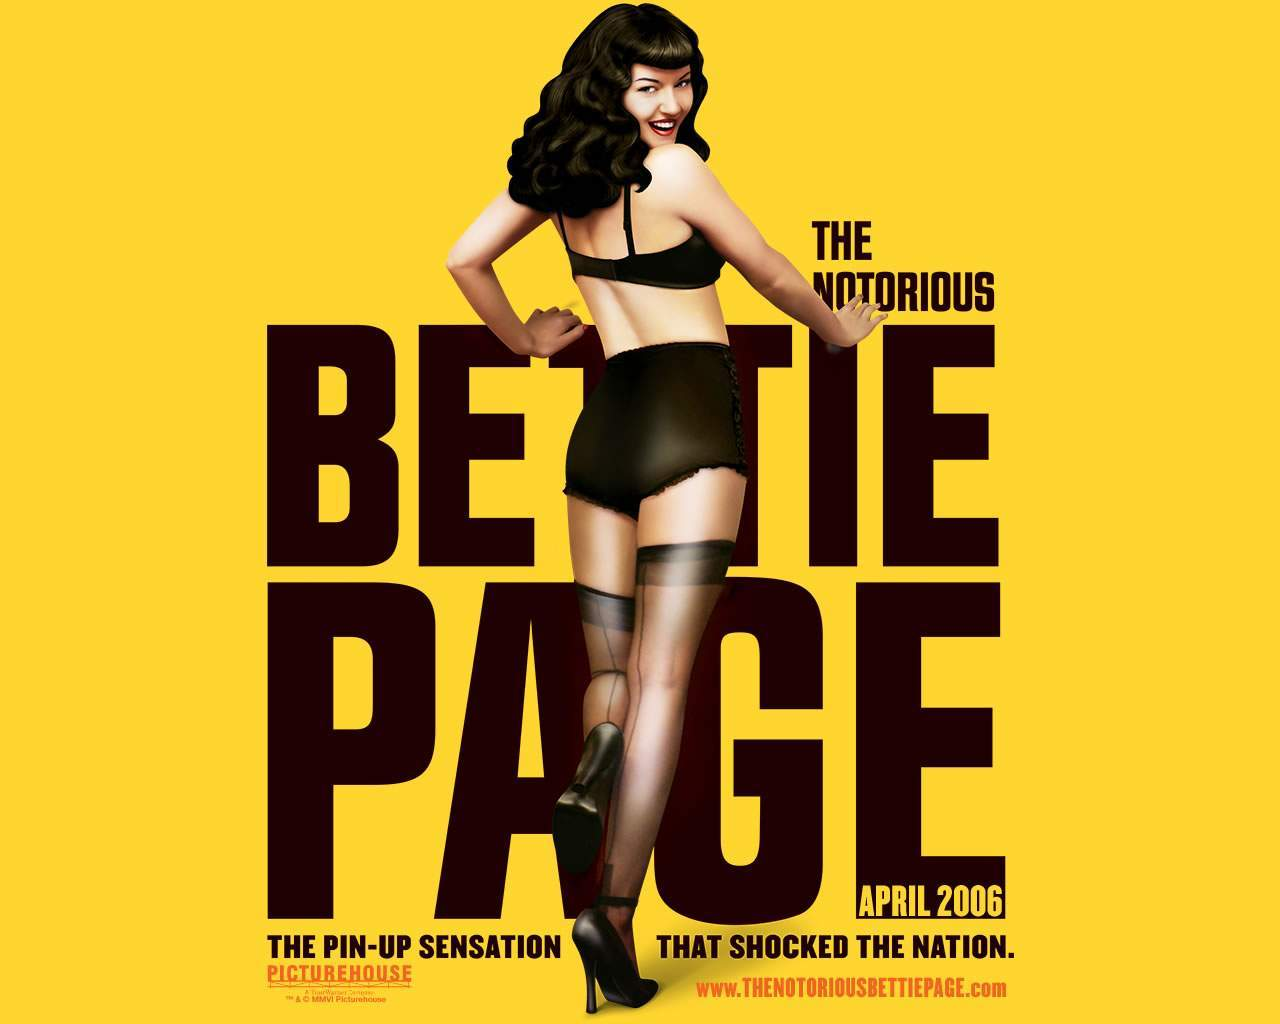 Pelicula bettie page